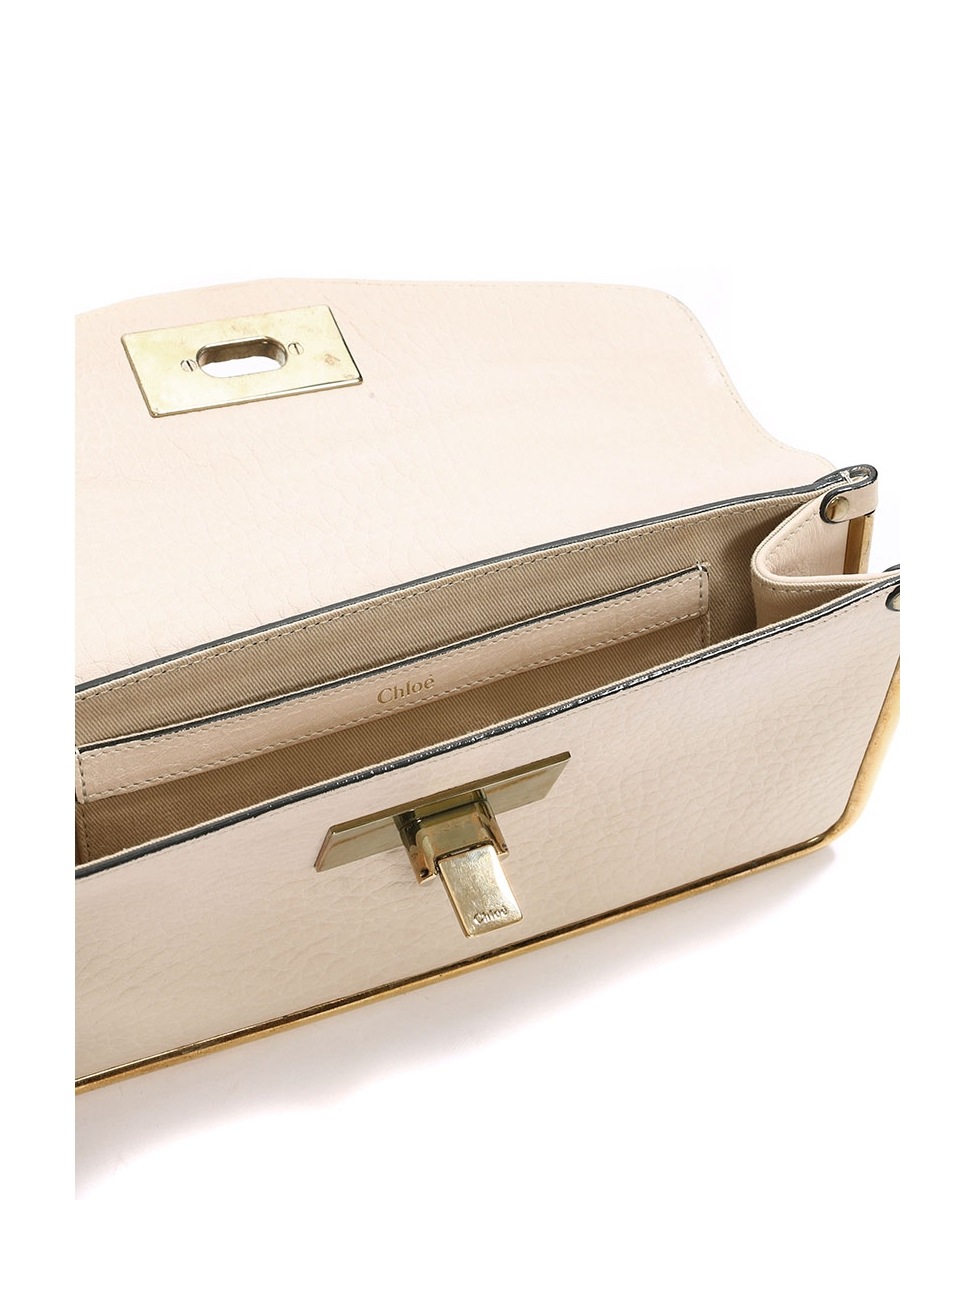 Louise Paris Chloe Sally Cream Grained Leather Clutch Bag With Elegant Fashion Gold Brass Lock Retail Price 850